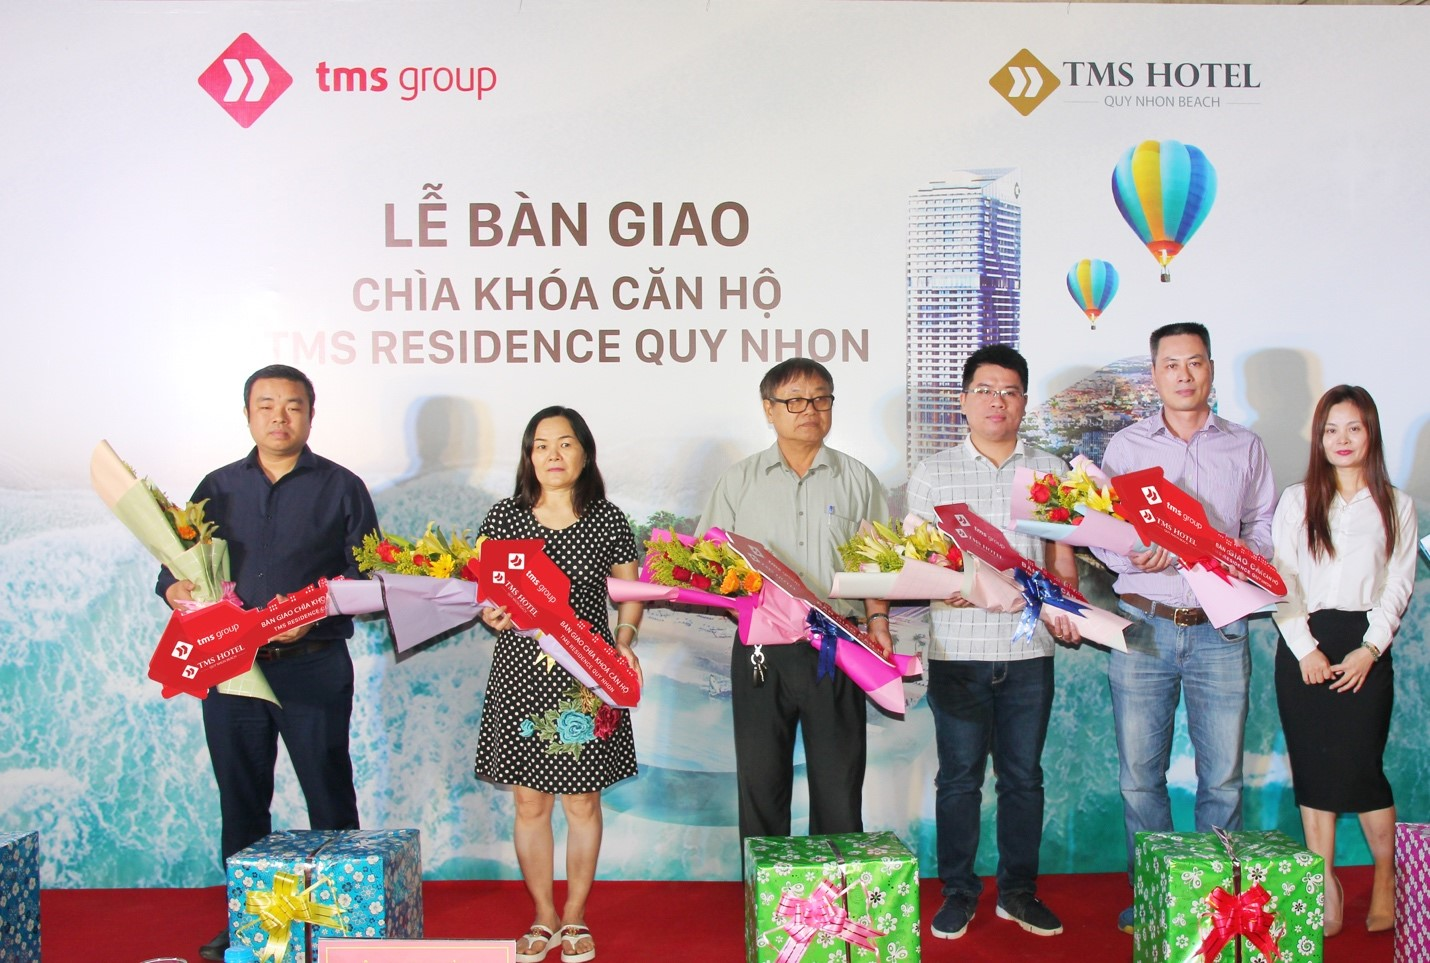 TMS Hotel Quy Nhon Beach hands over apartments to first clients